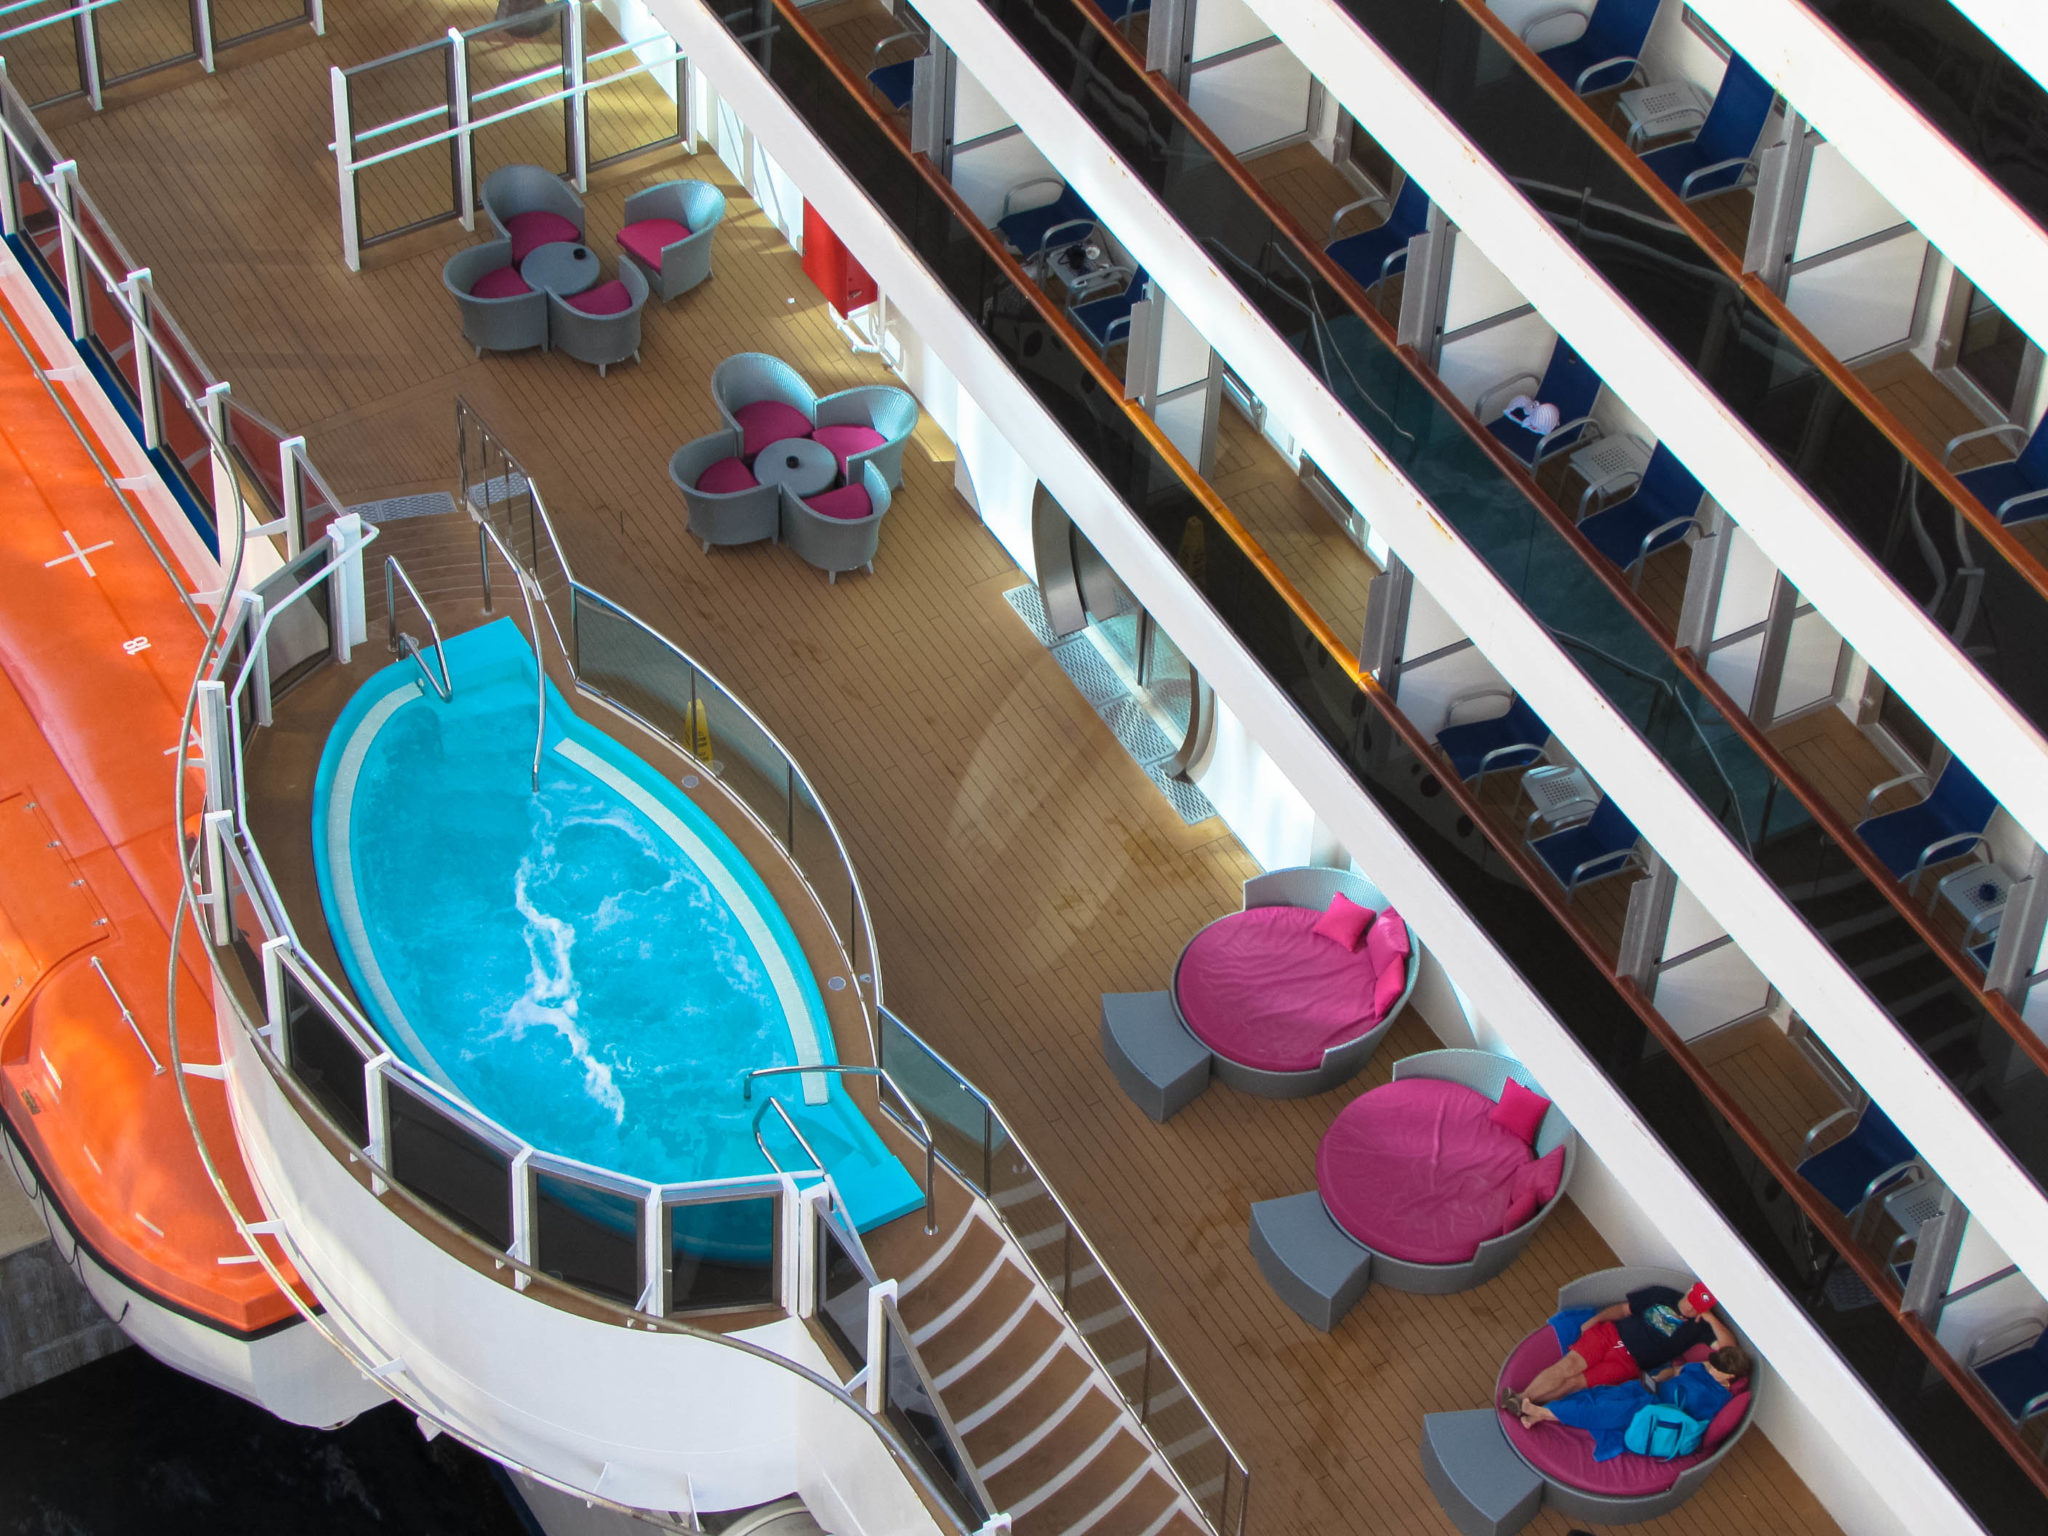 5 Things You Should Not Do On A Cruise